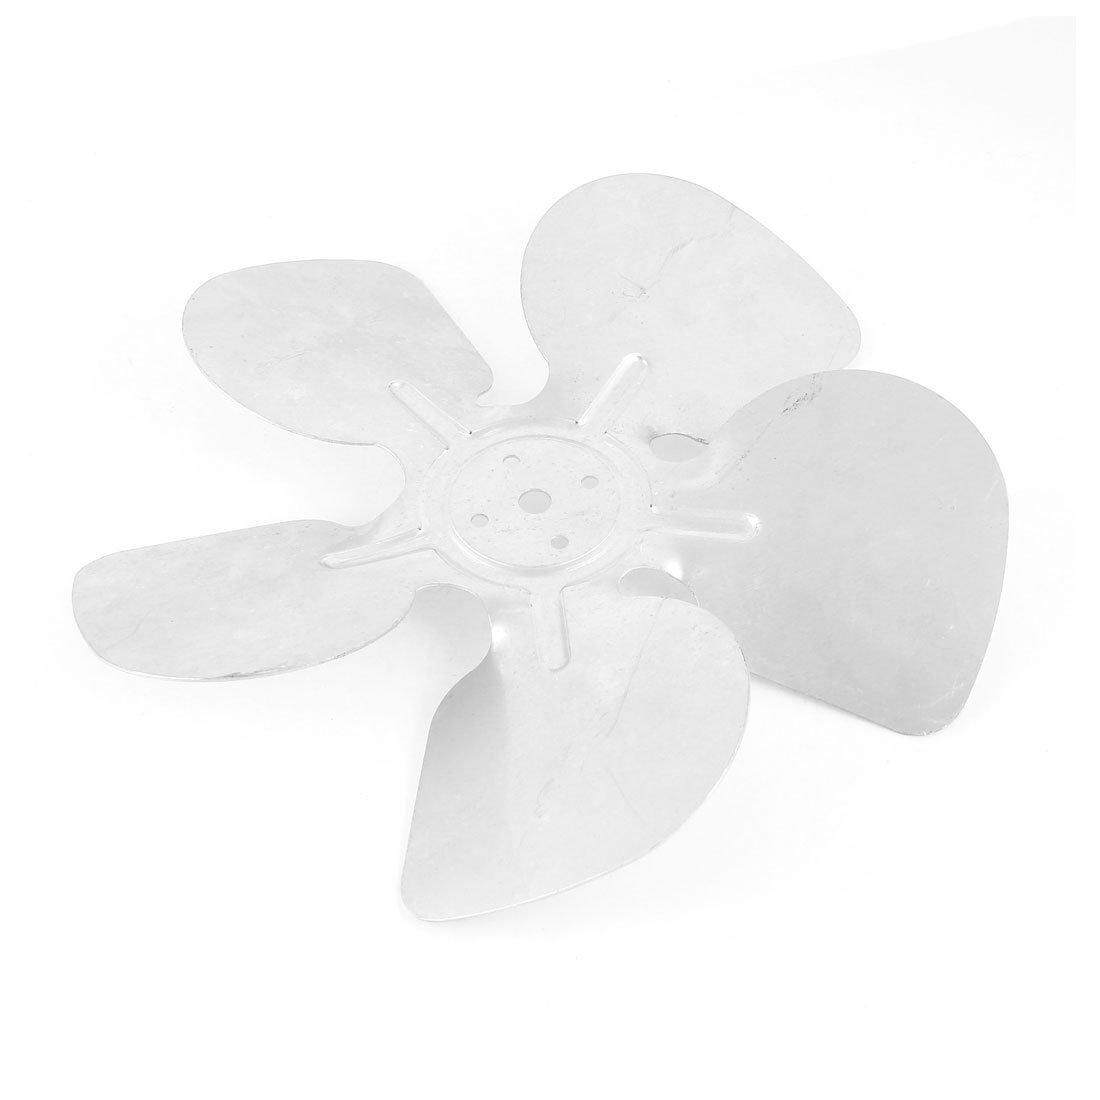 8 Shaded Pole Motor Aluminum Hubless Fan Blades Replacement By Yoyonow.